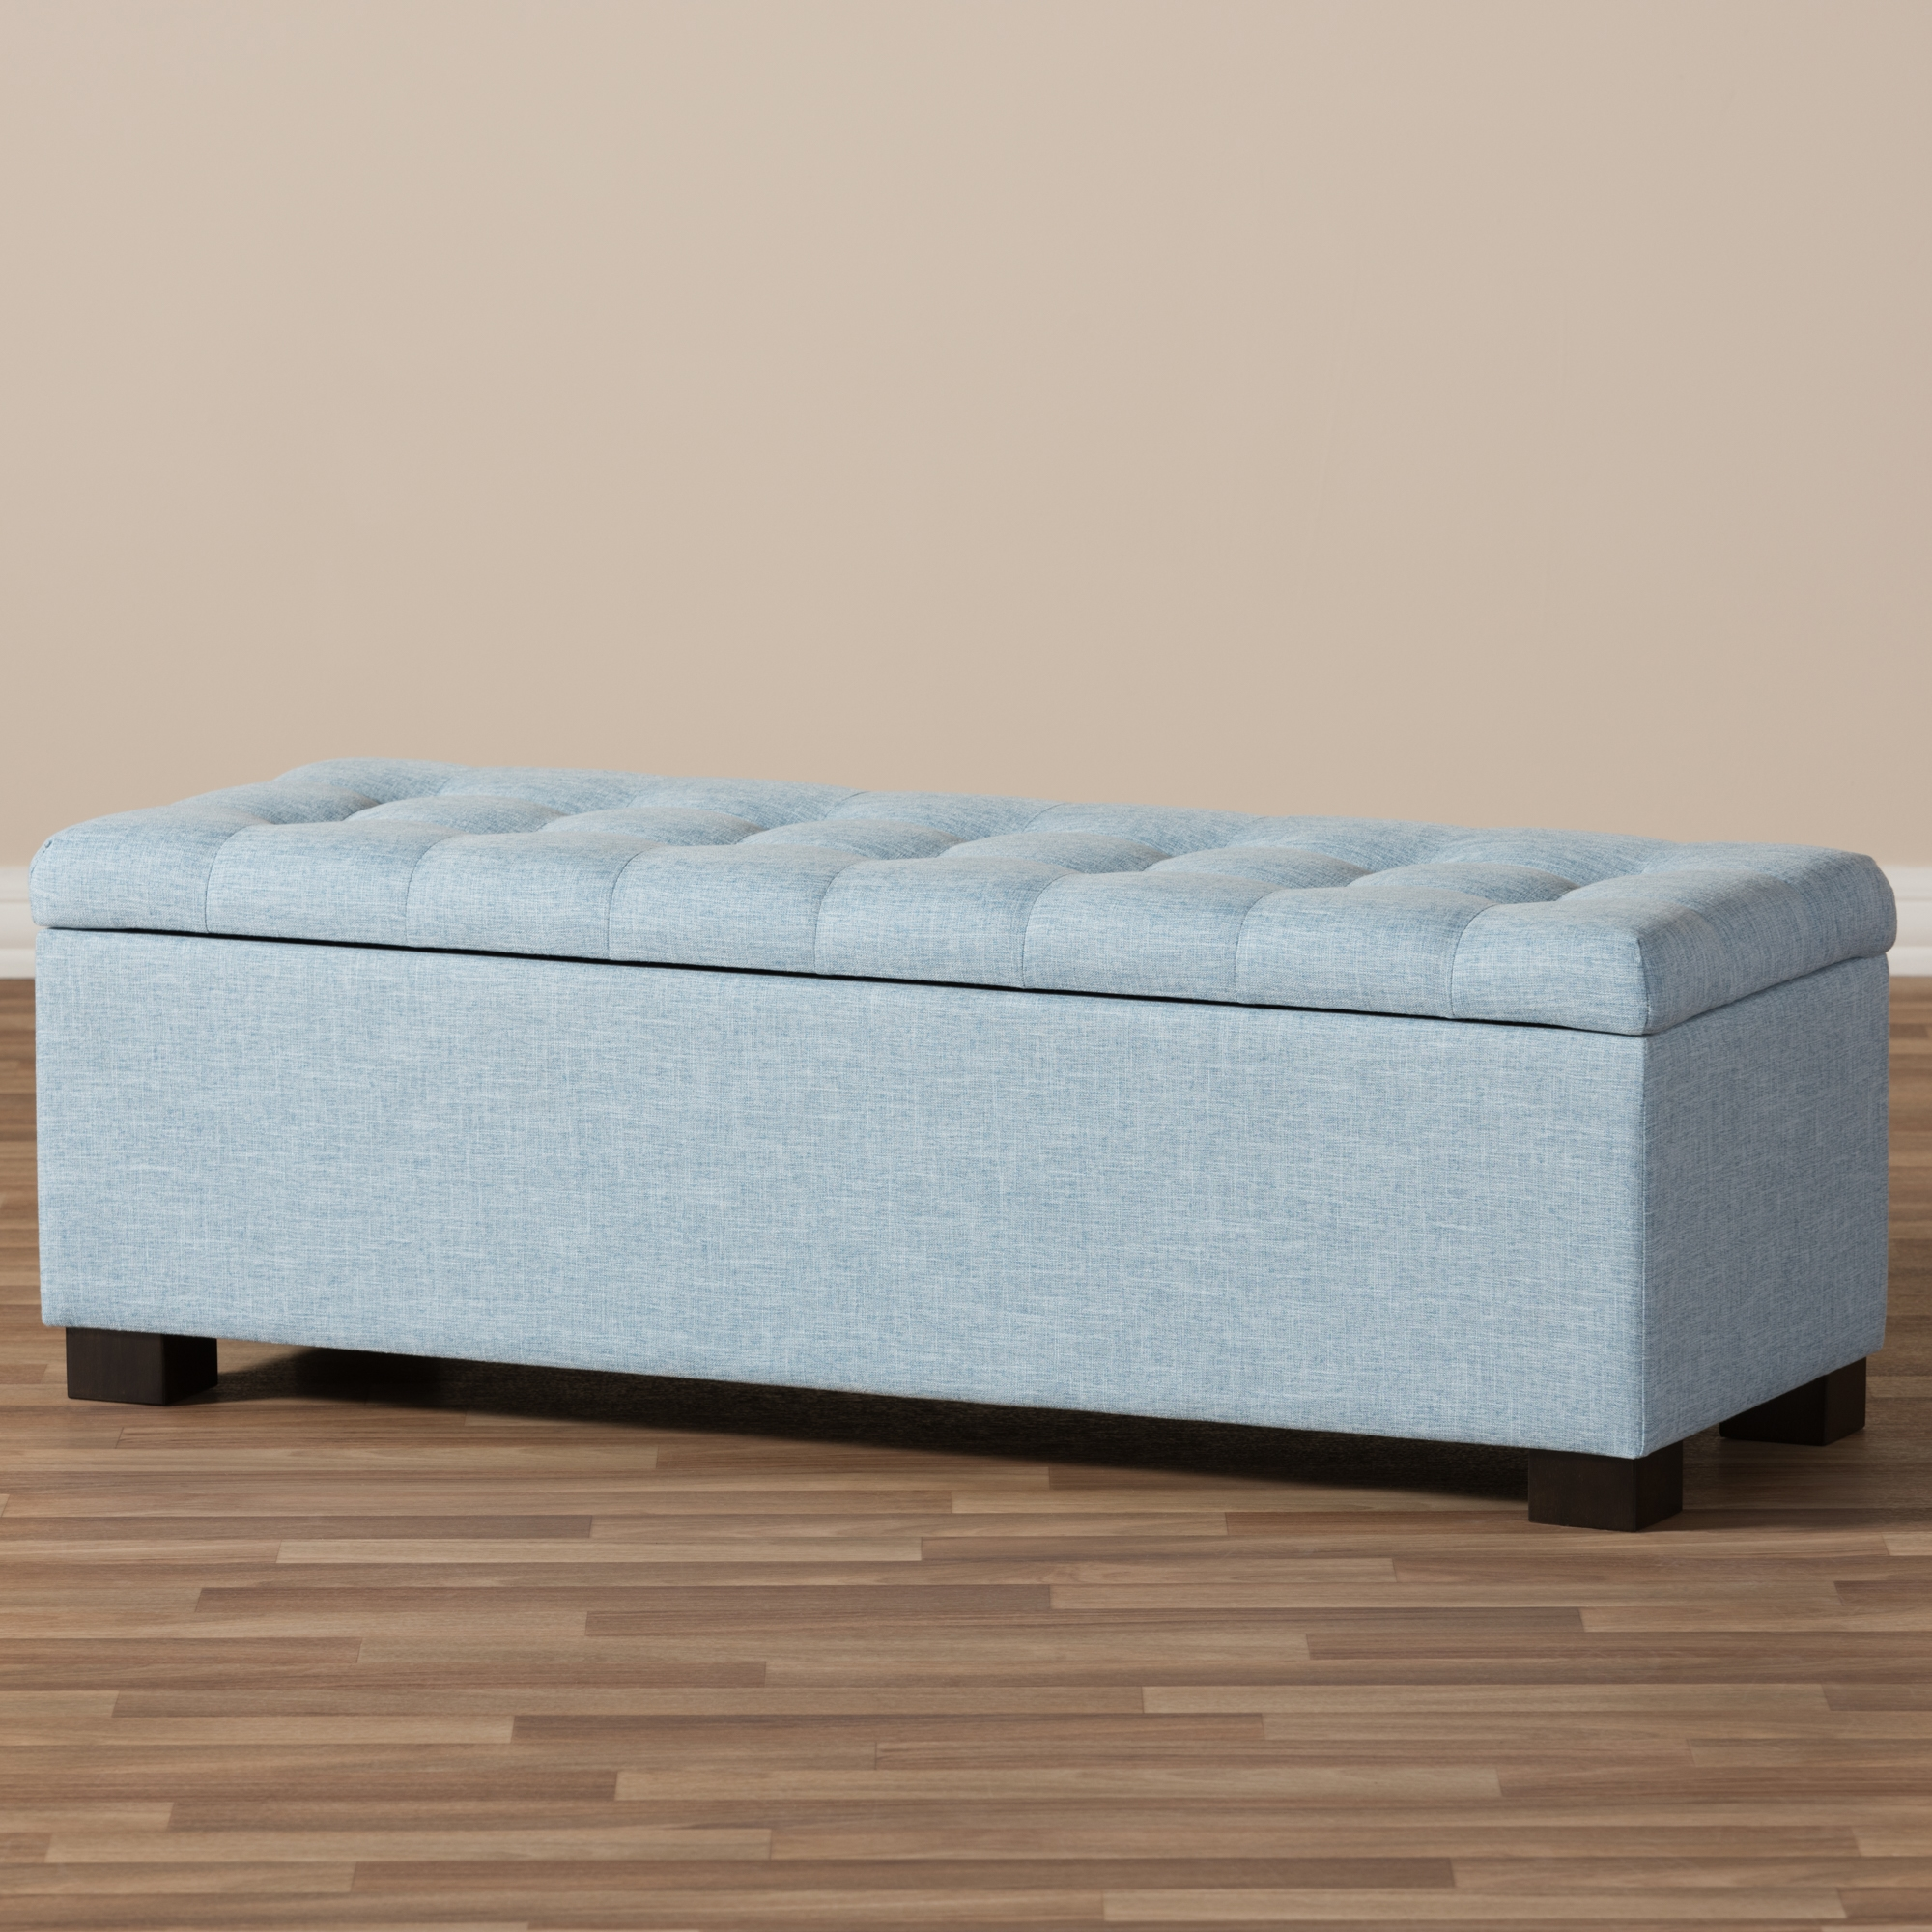 light blue ottoman. Baxton Studio Roanoke Modern And Contemporary Light Blue Fabric Upholstered Grid-Tufting Storage Ottoman Bench T